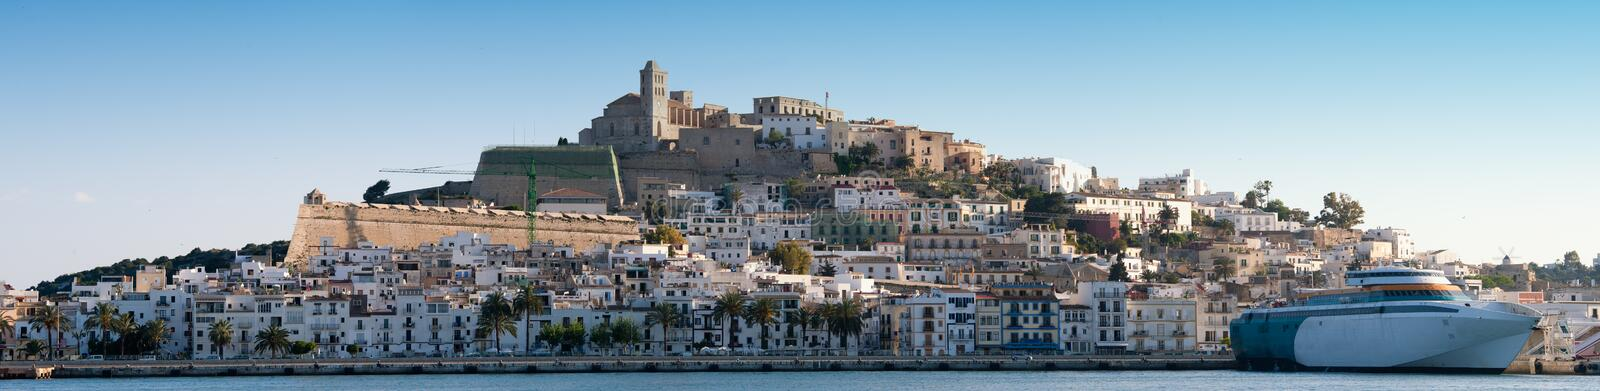 Panorama image of Ibiza town stock photography